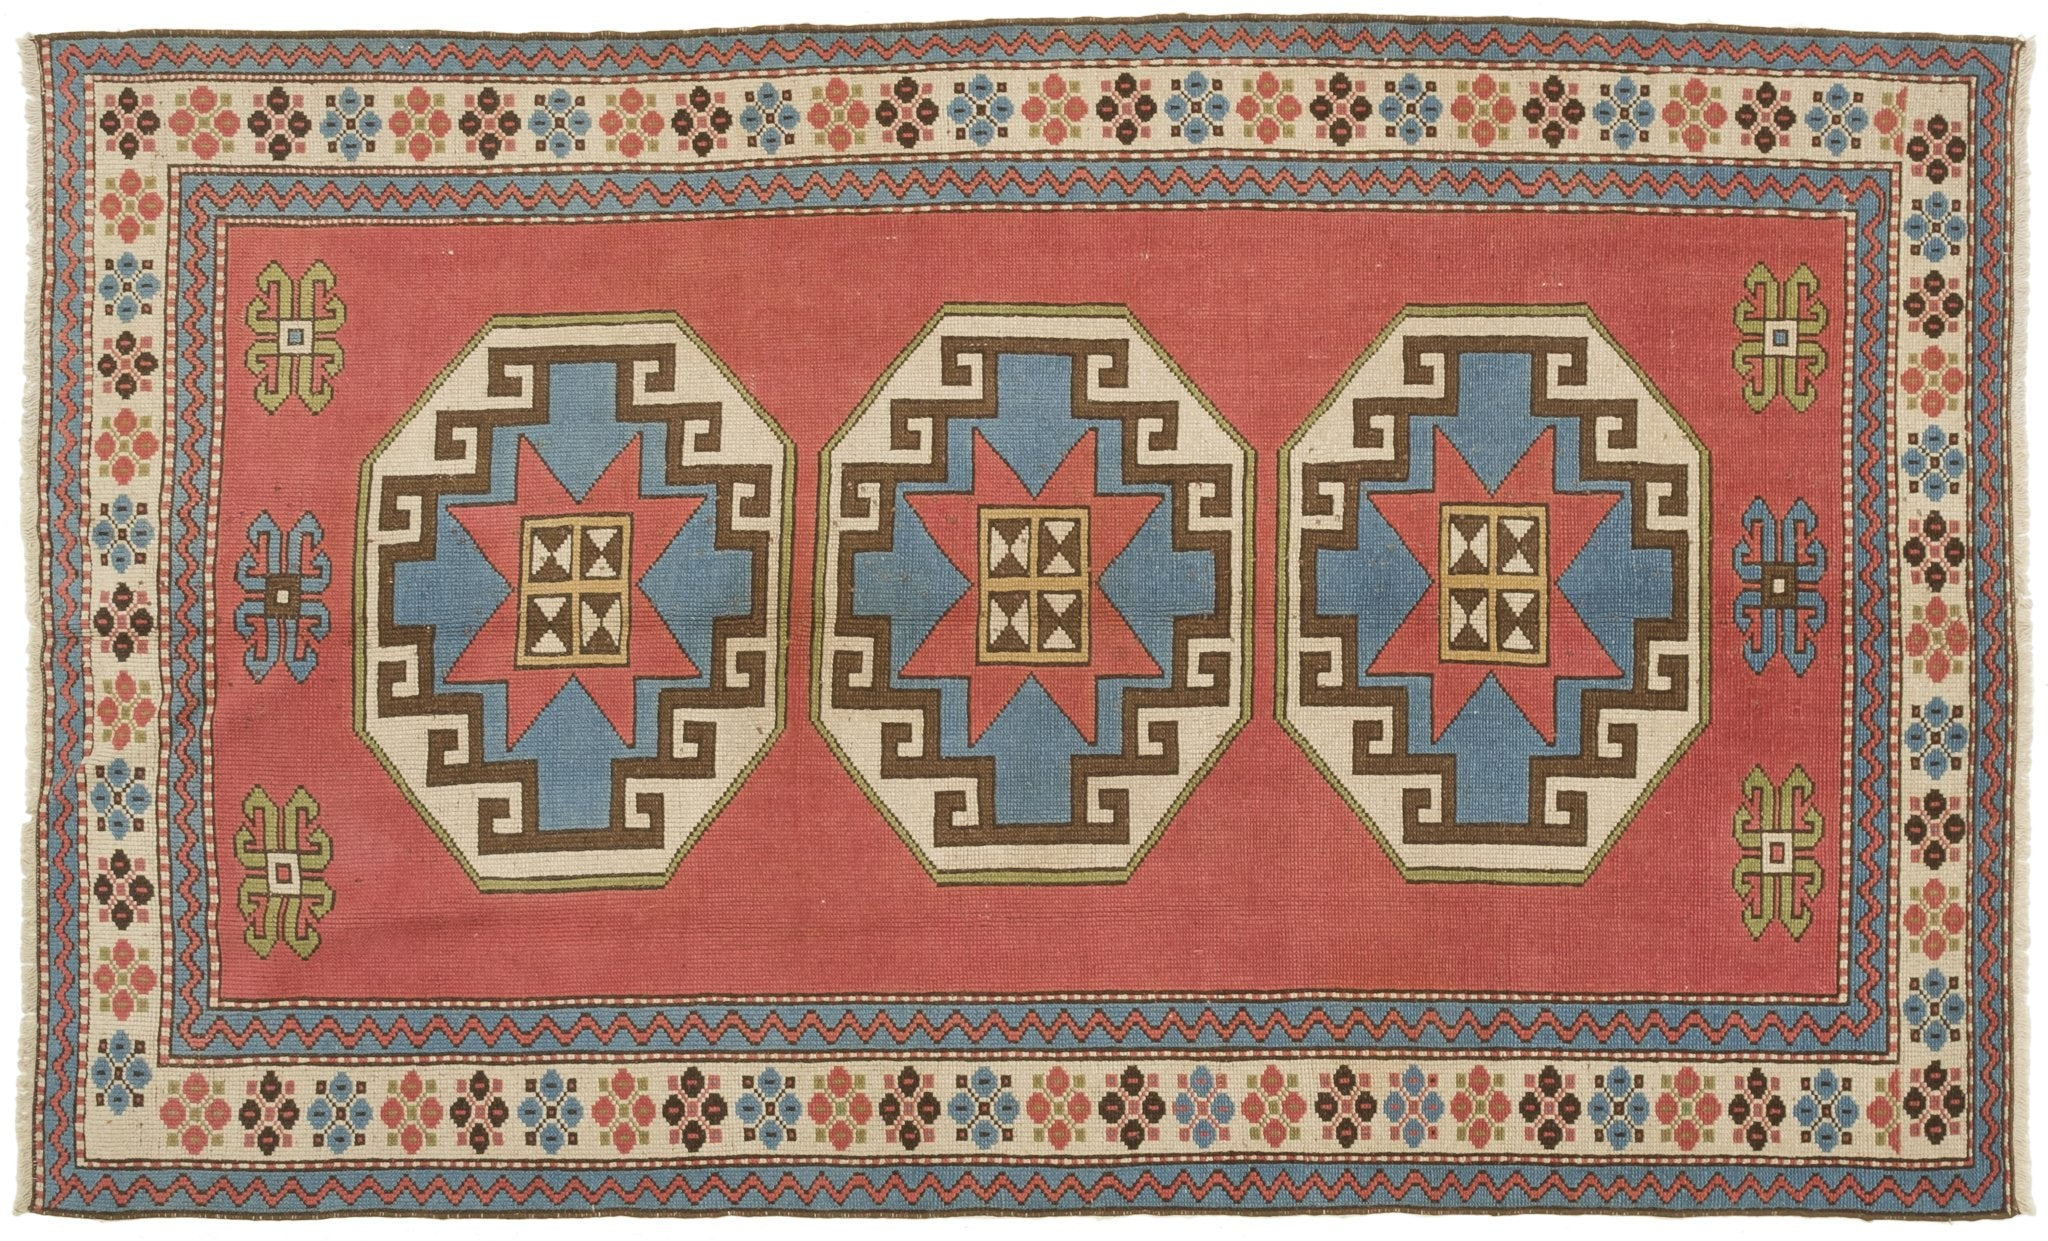 Vintage Turkish Rug Aarno